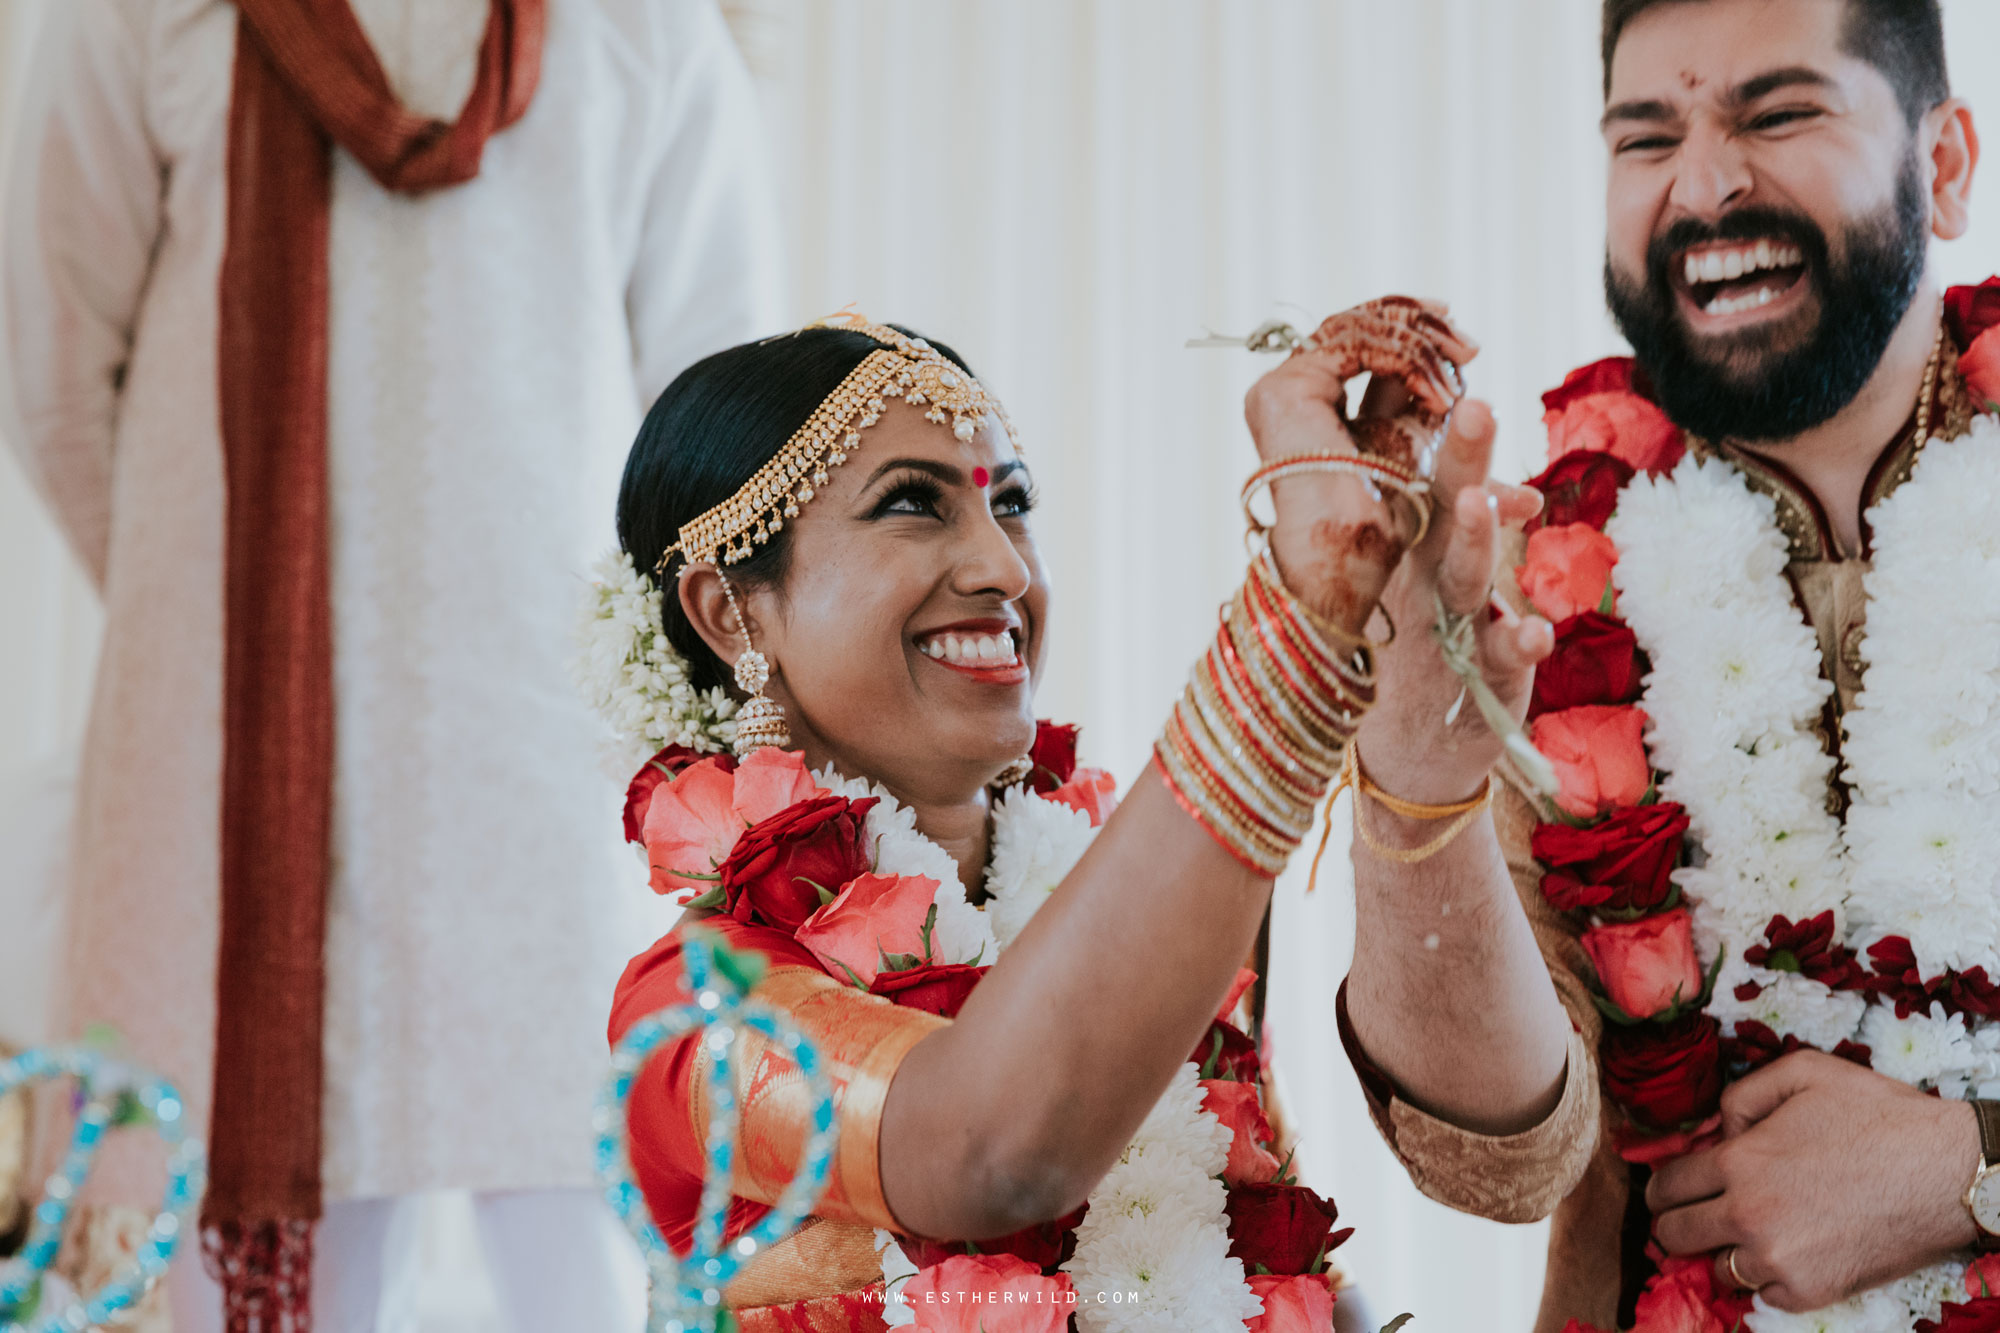 Northbrook_Park_Farnham_Surrey_London_Wedding_Hindu_Fusion_Esther_Wild_Photographer_IMG_4804.jpg